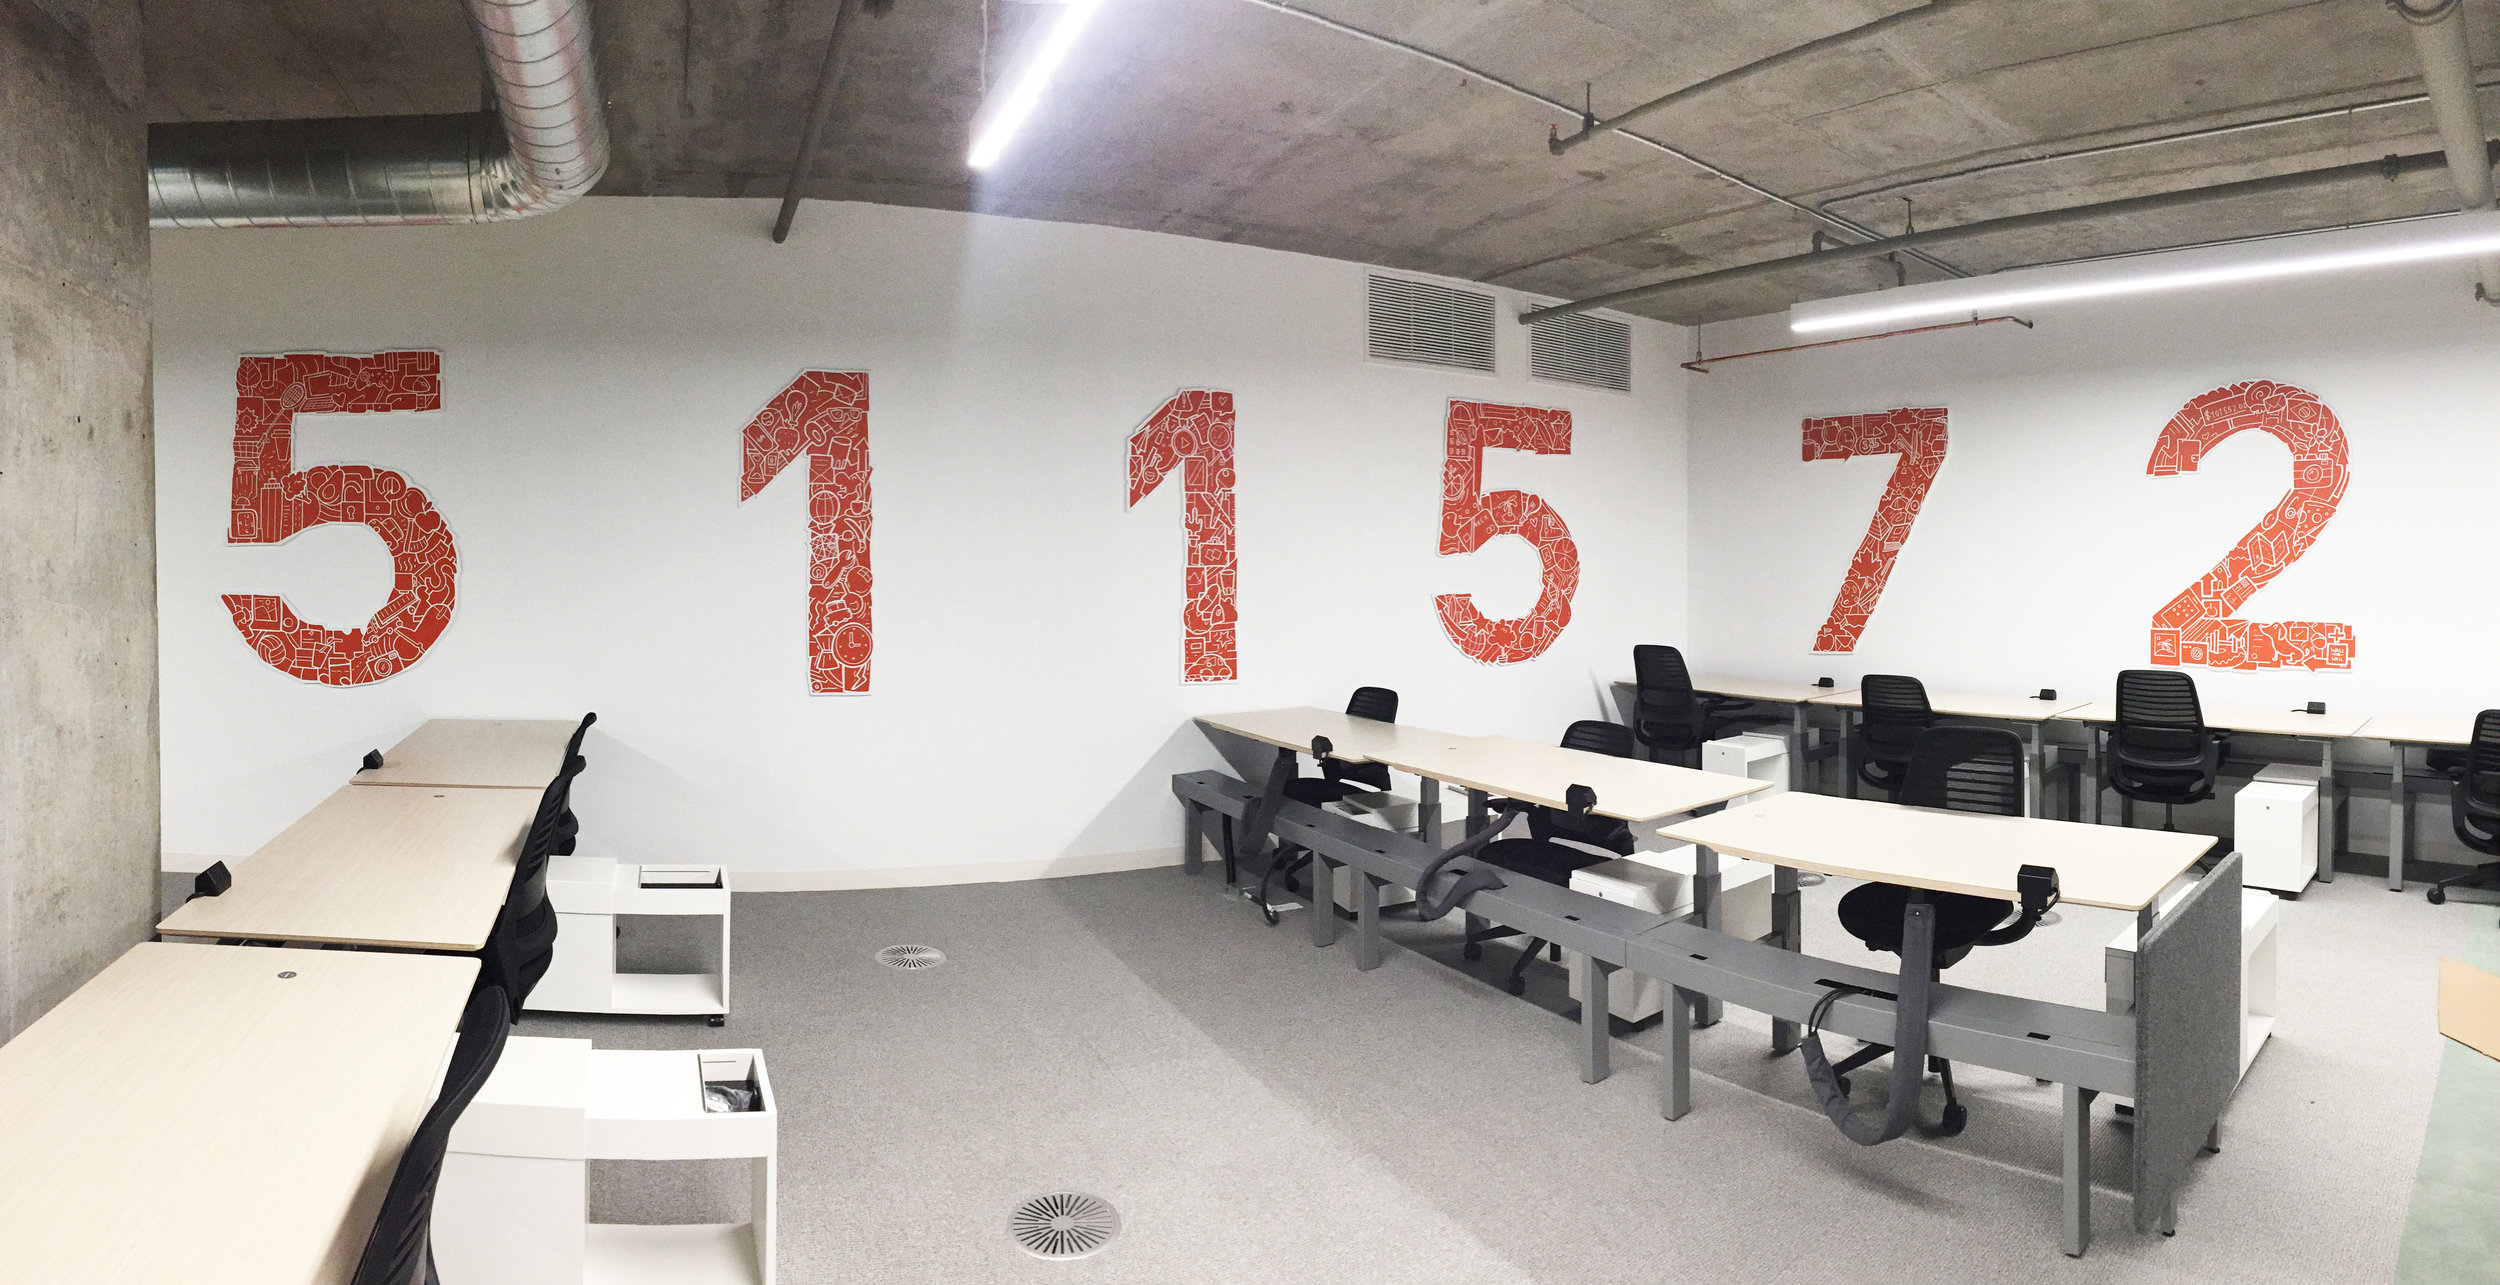 Office-commercial-mural-san-francisco-brex-alcove-wall-and-wall-mural-company.jpeg